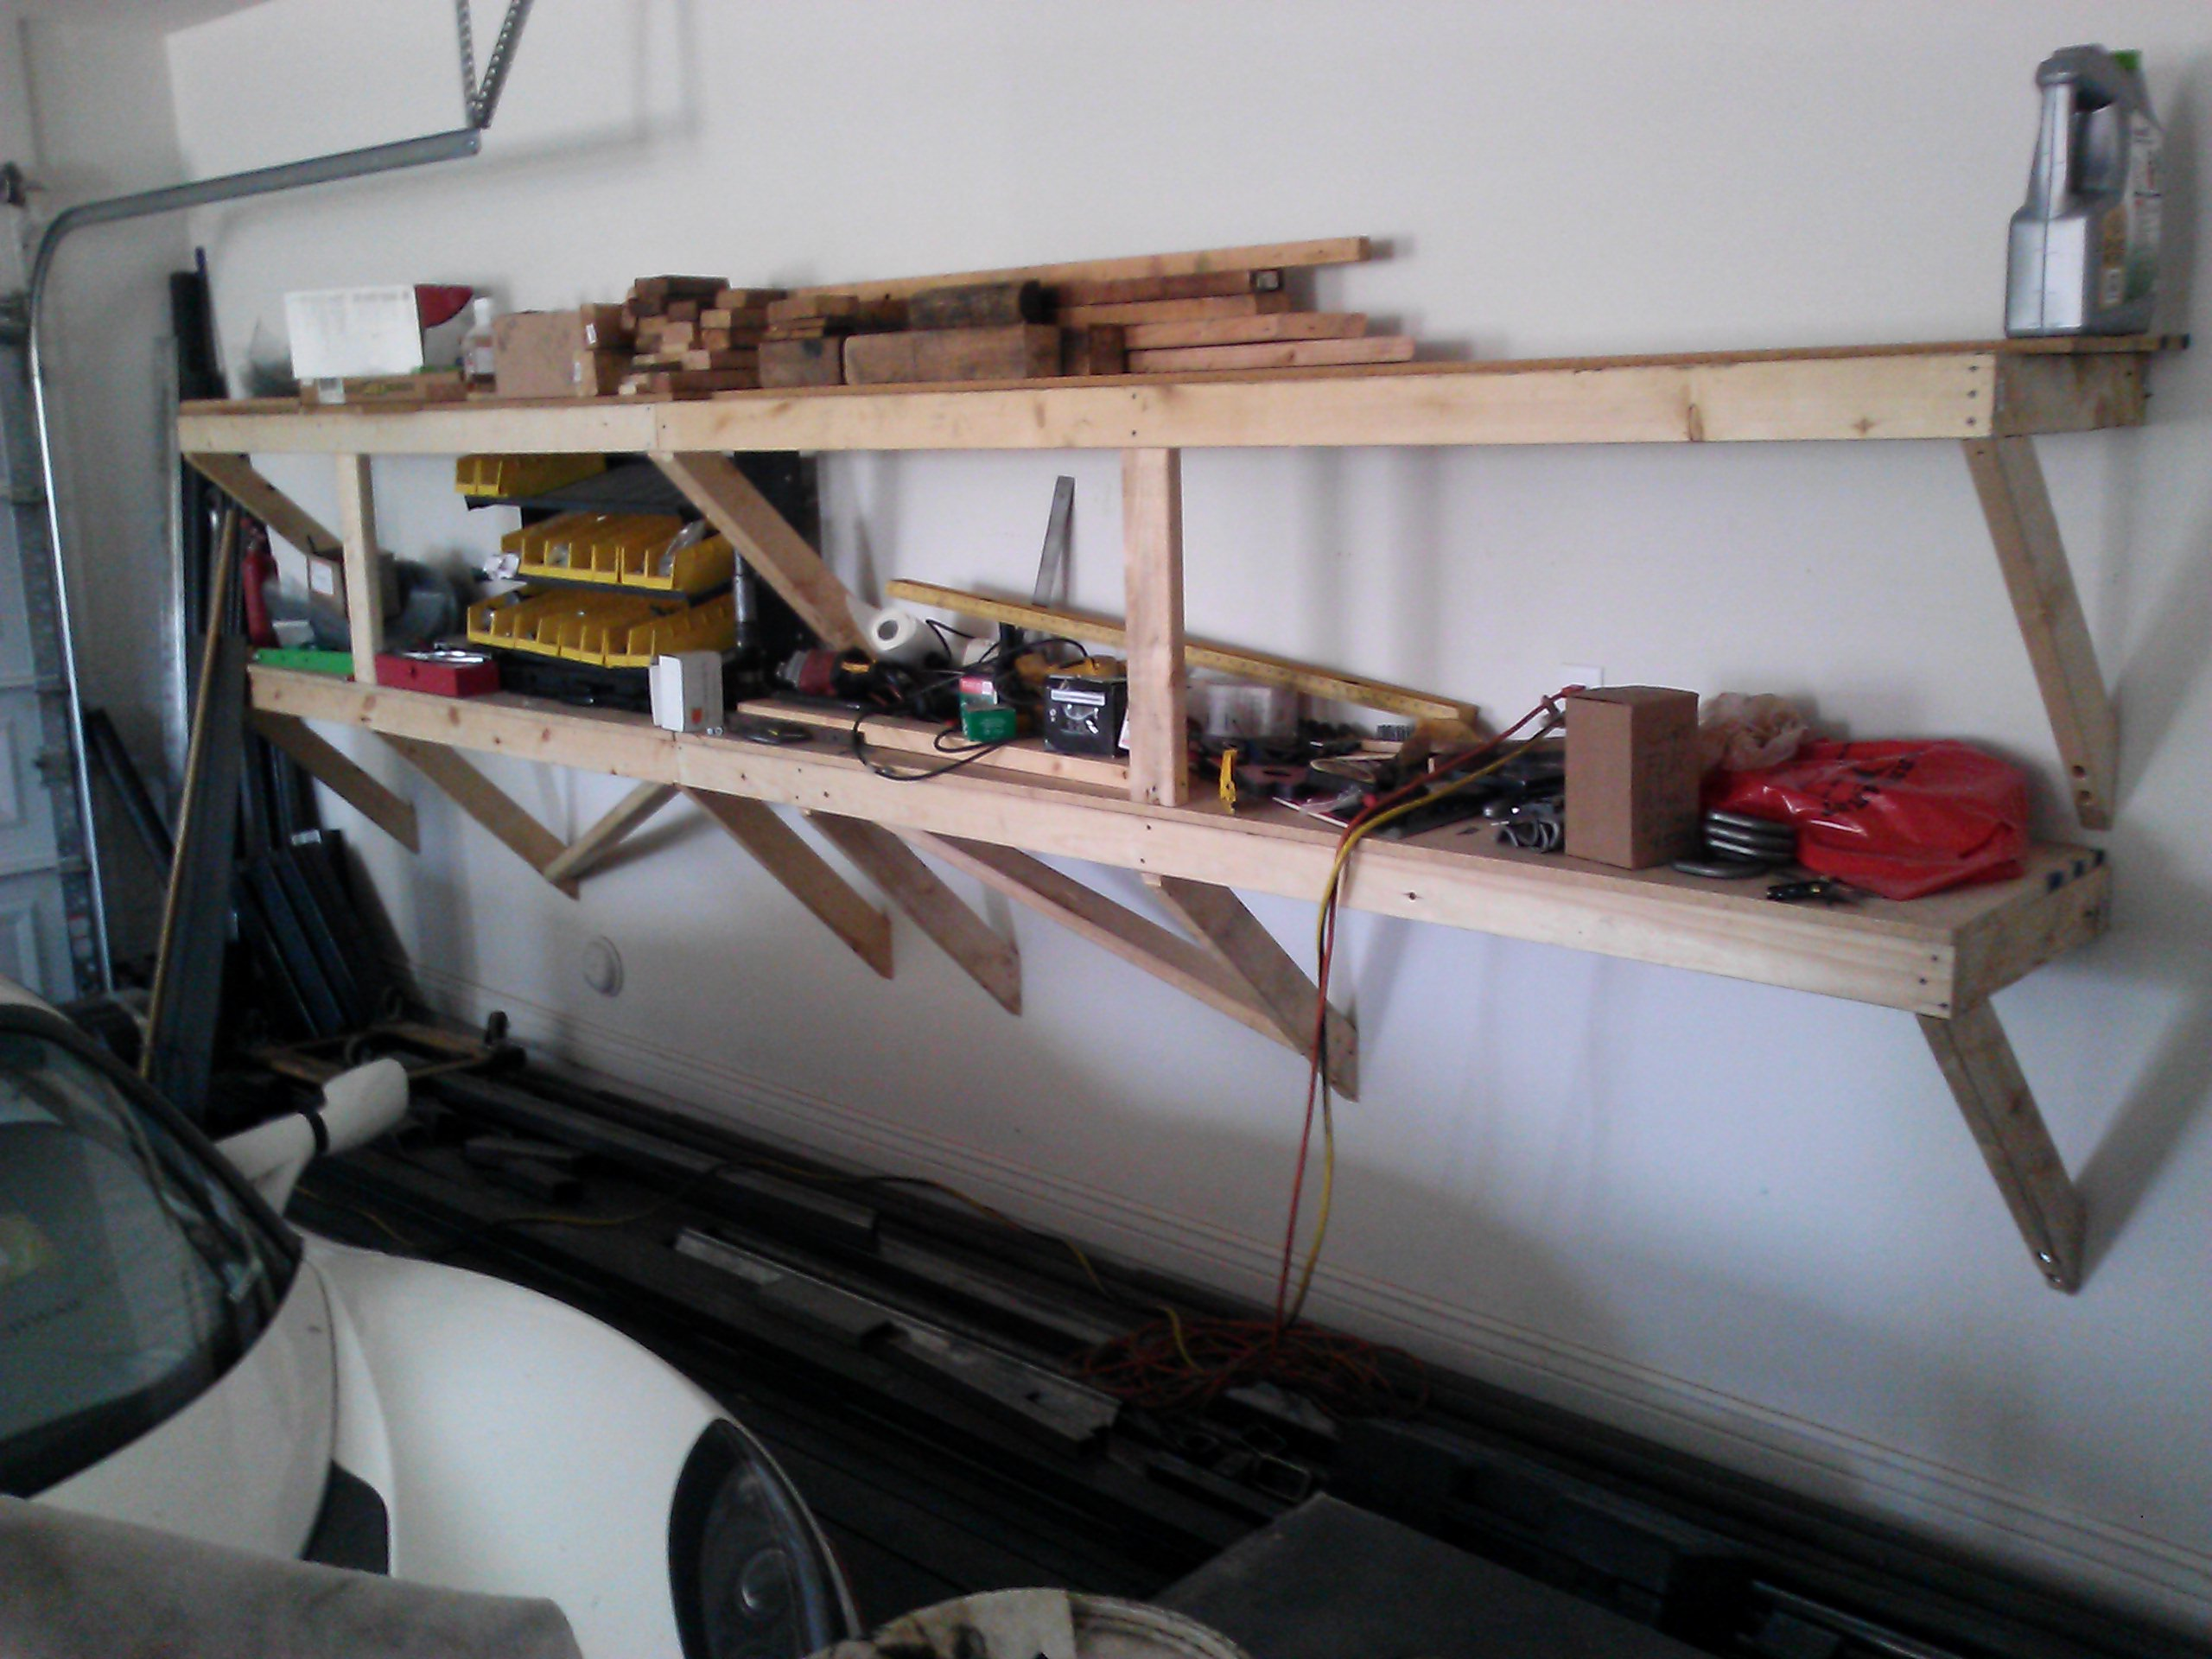 Recommendations for Decent Quality But Inexpensive Garage Shelves? & Recommendations for Decent Quality But Inexpensive Garage Shelves ...